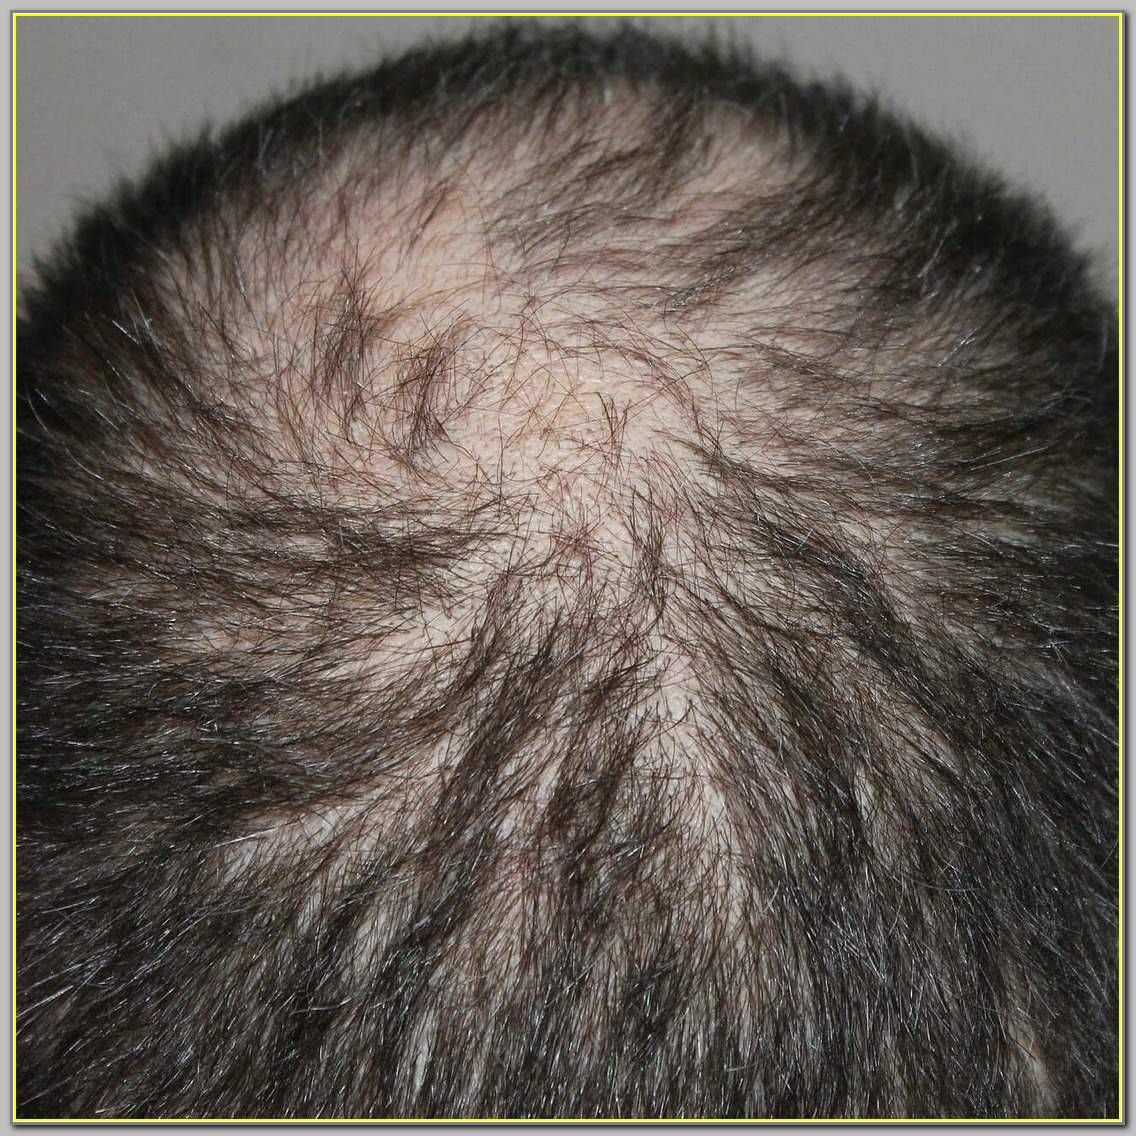 Pin on Hair Loss Prevention